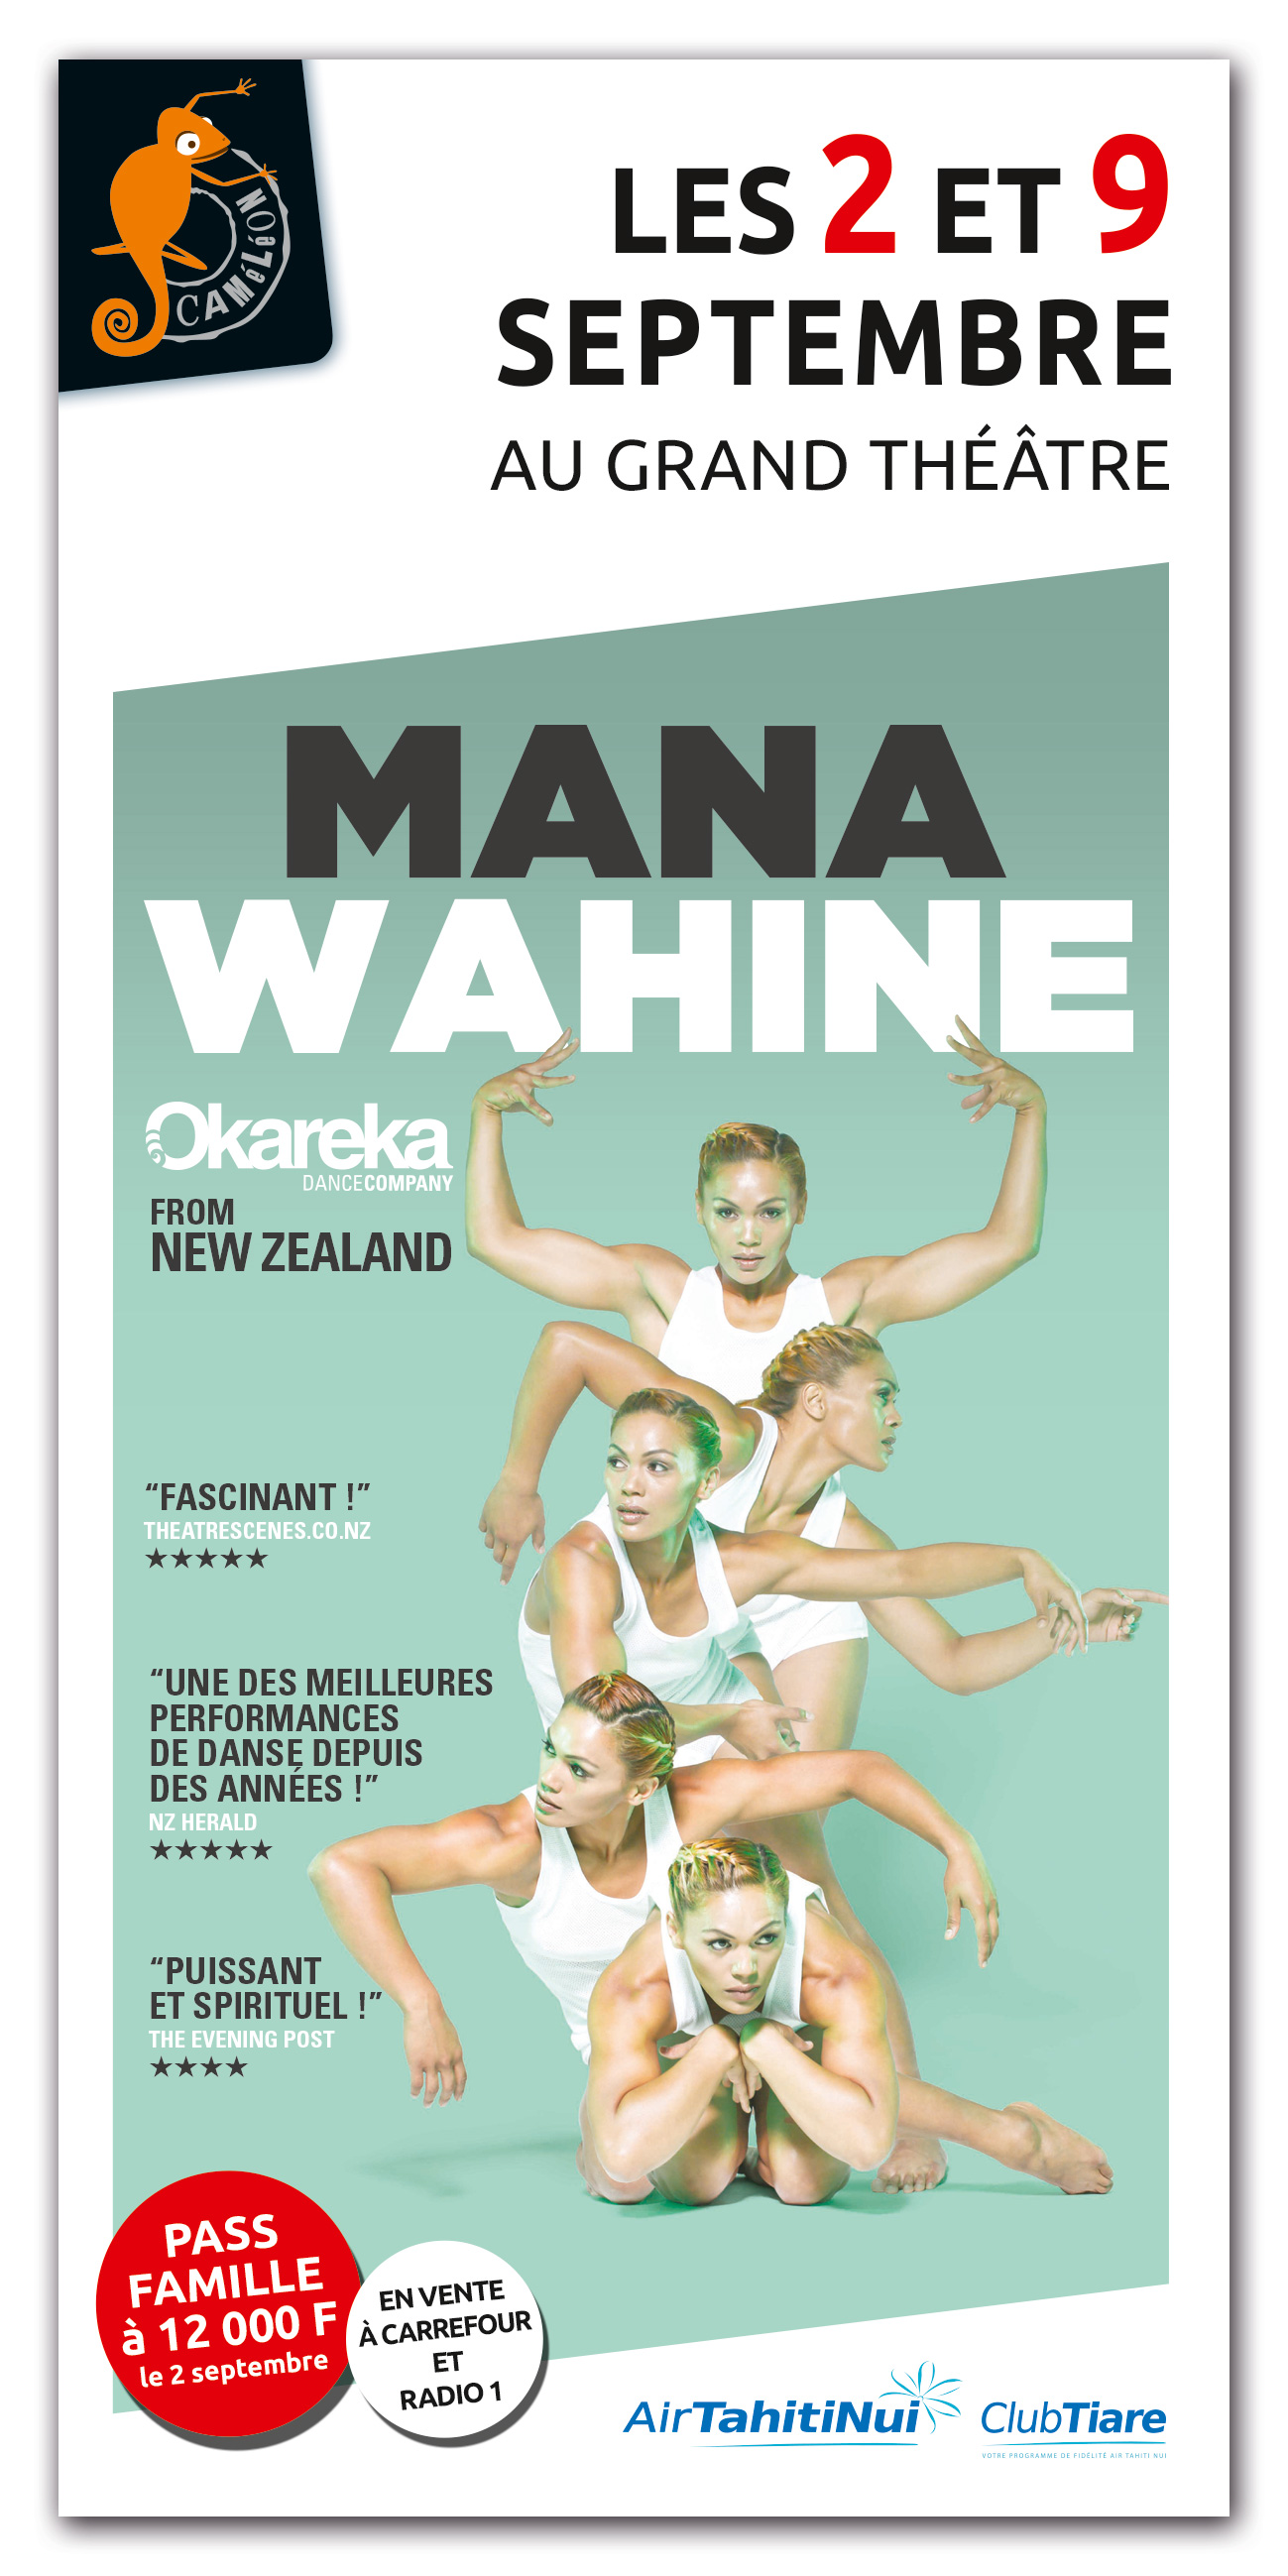 """Mana Wahine"" : l'alliance de la tradition maorie et de l'expression contemporaine"